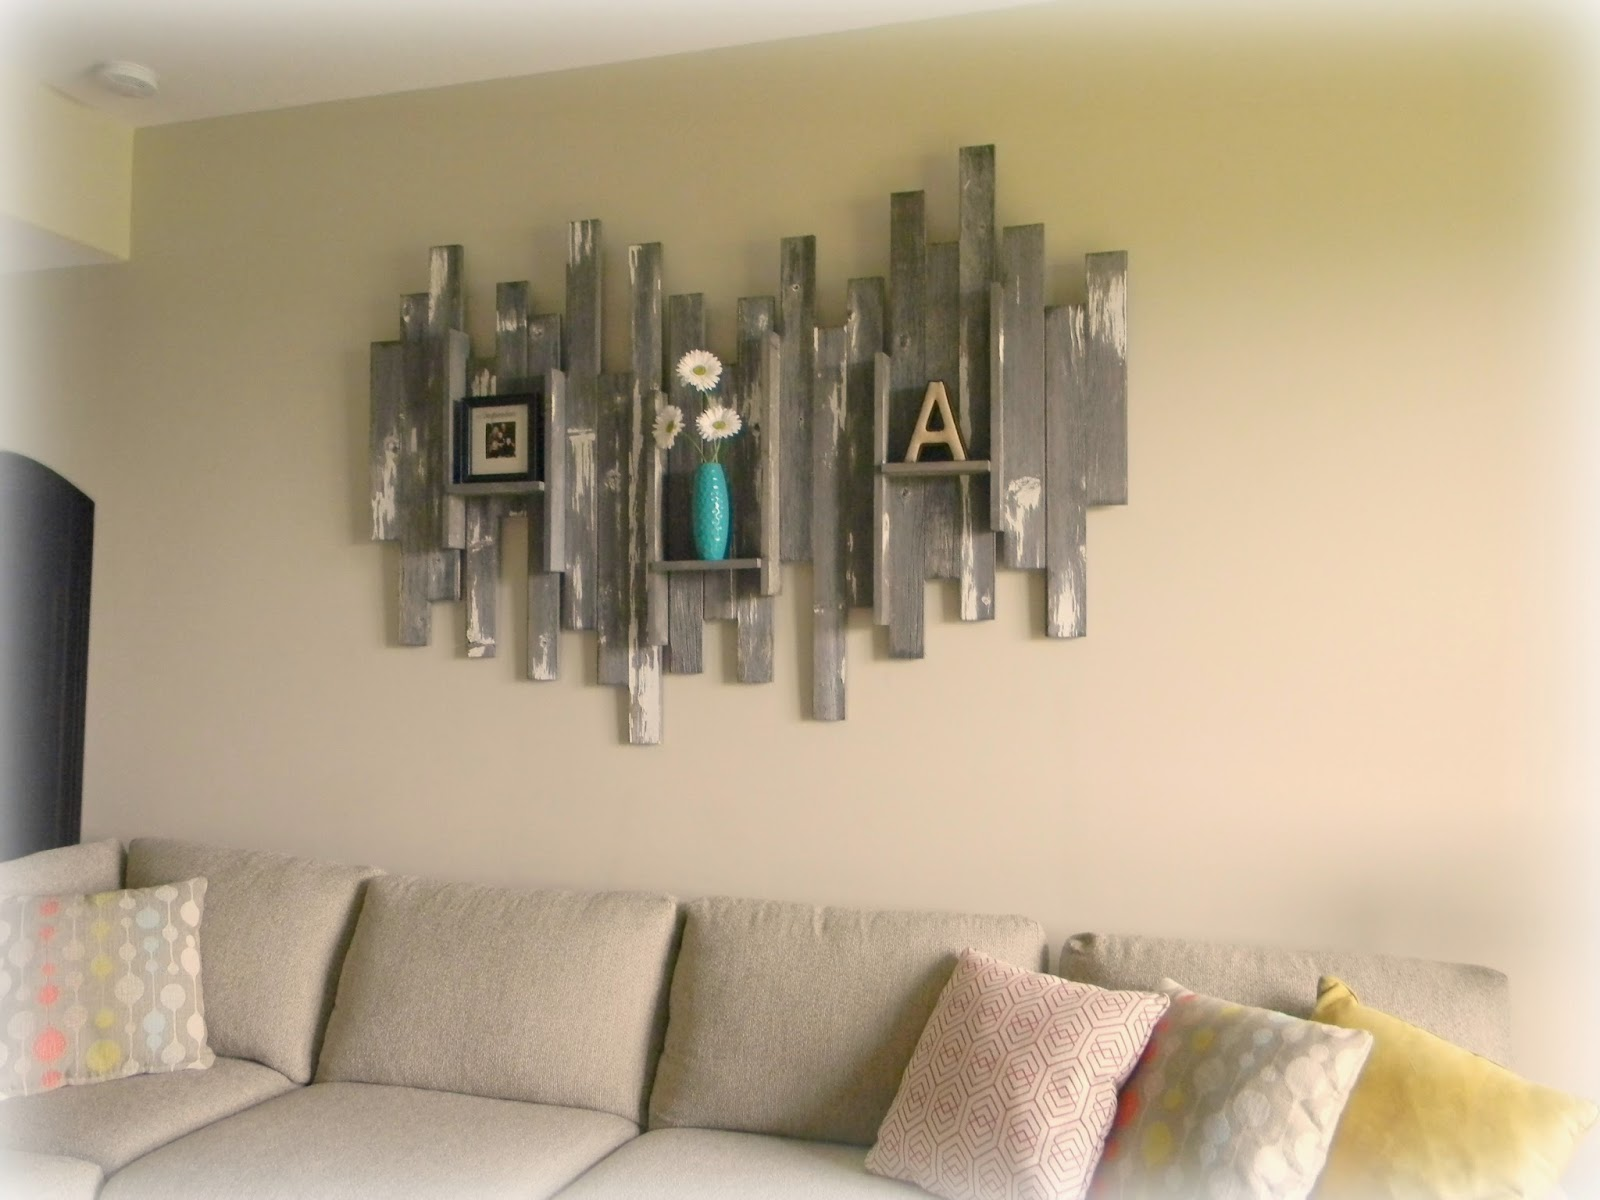 Cool Wood Wall Art Decor